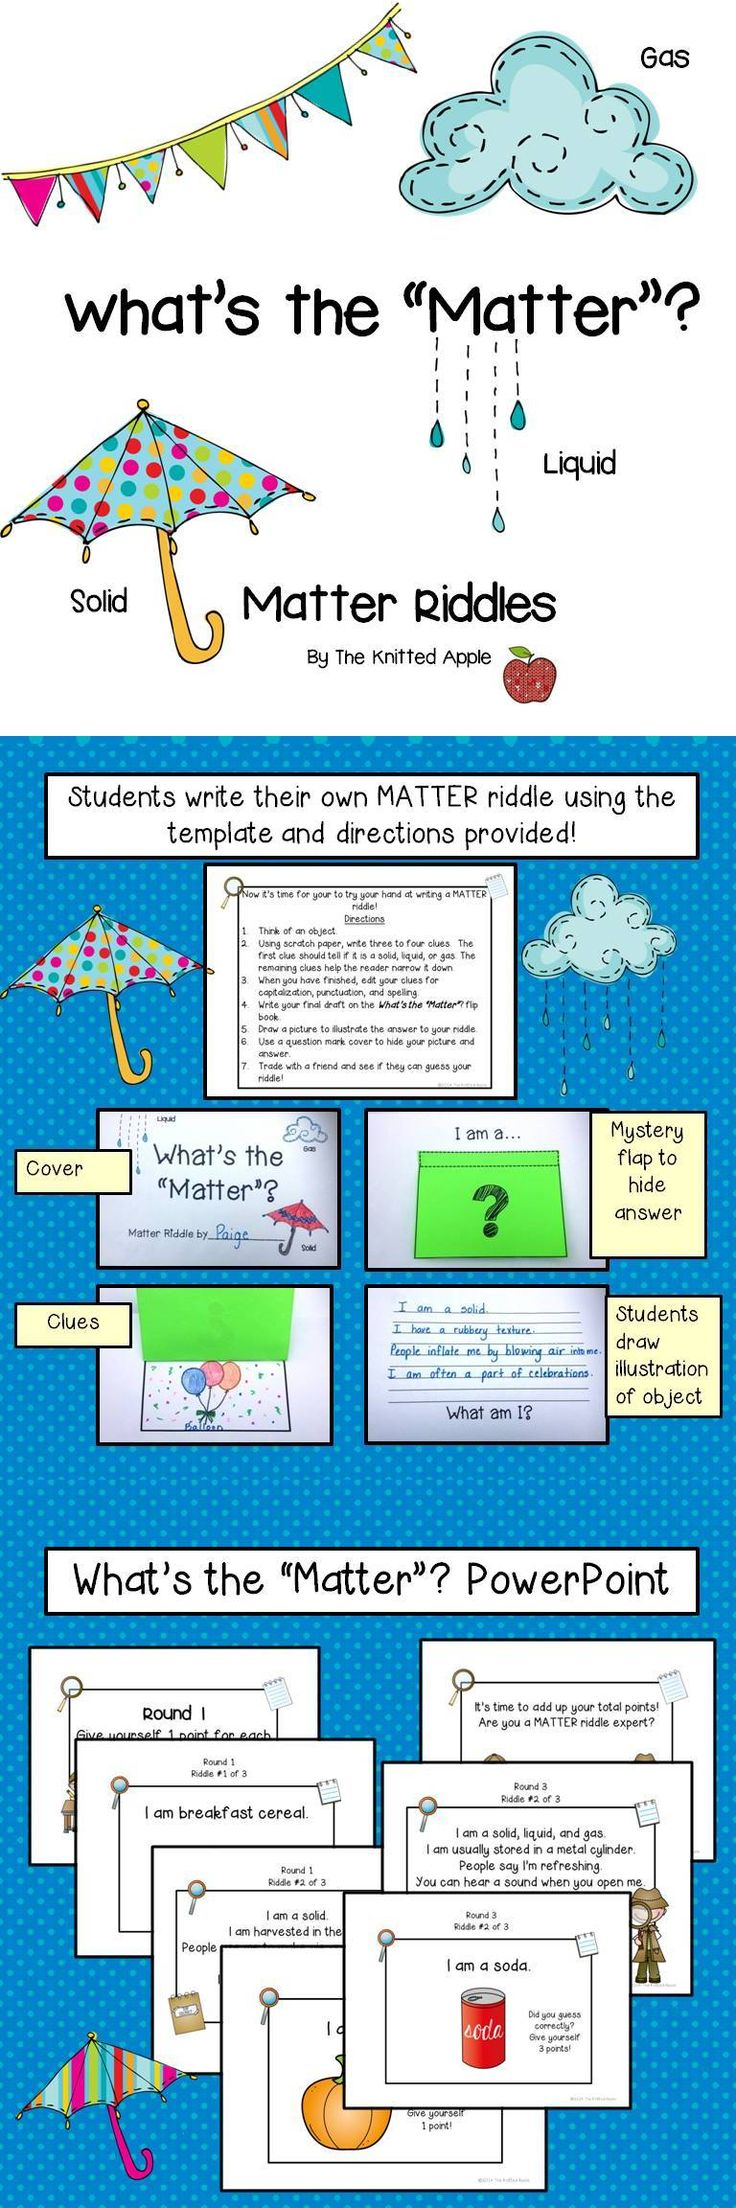 Matter Riddles PowerPoint- includes template for students to crea